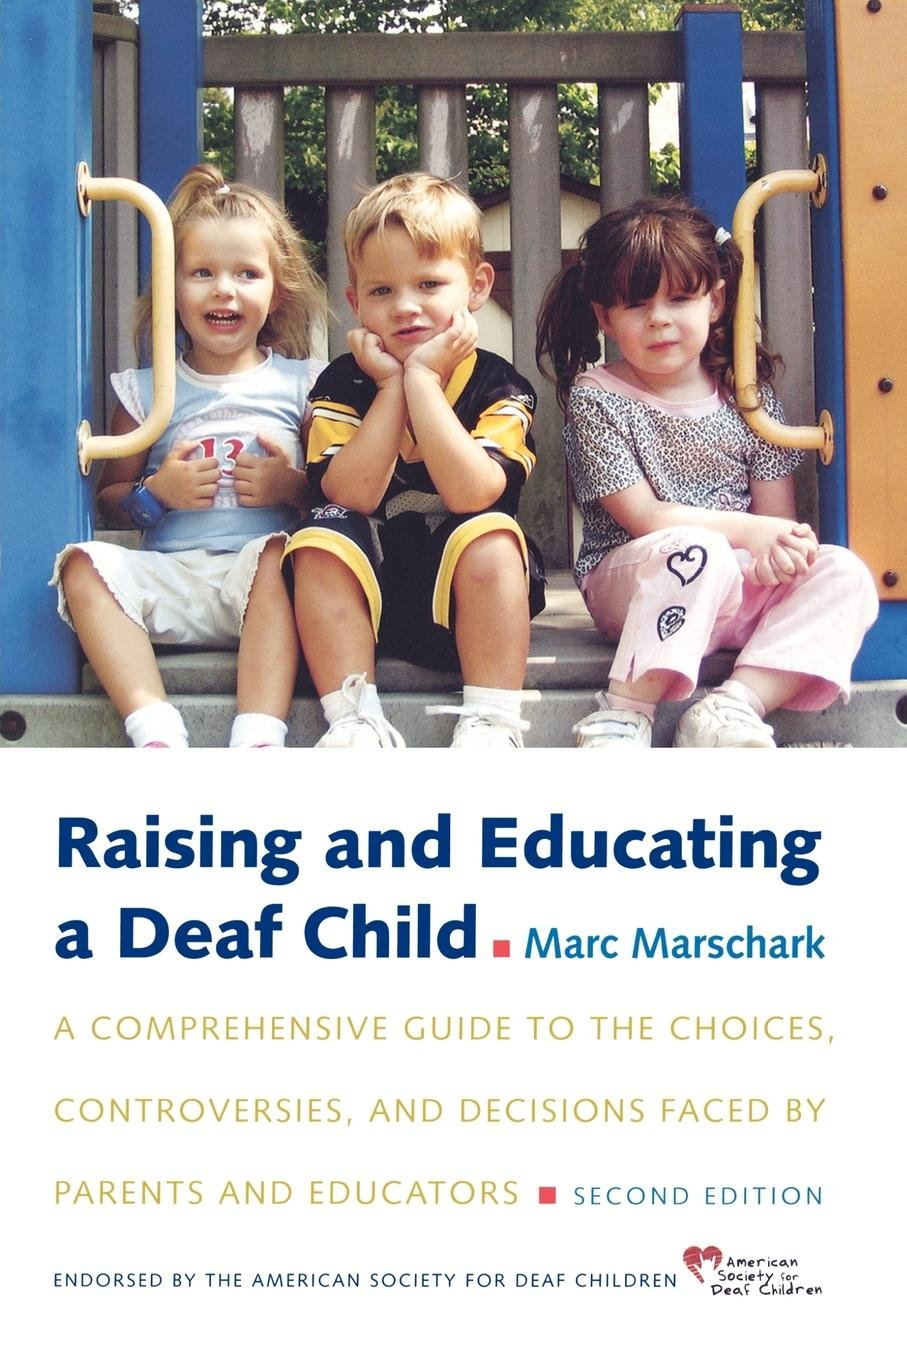 Raising and Educating a Deaf Child: A Comprehensive Guide to the Choices, Controversies, and Decisions Faced by Parents and Educators by Oxford University Press